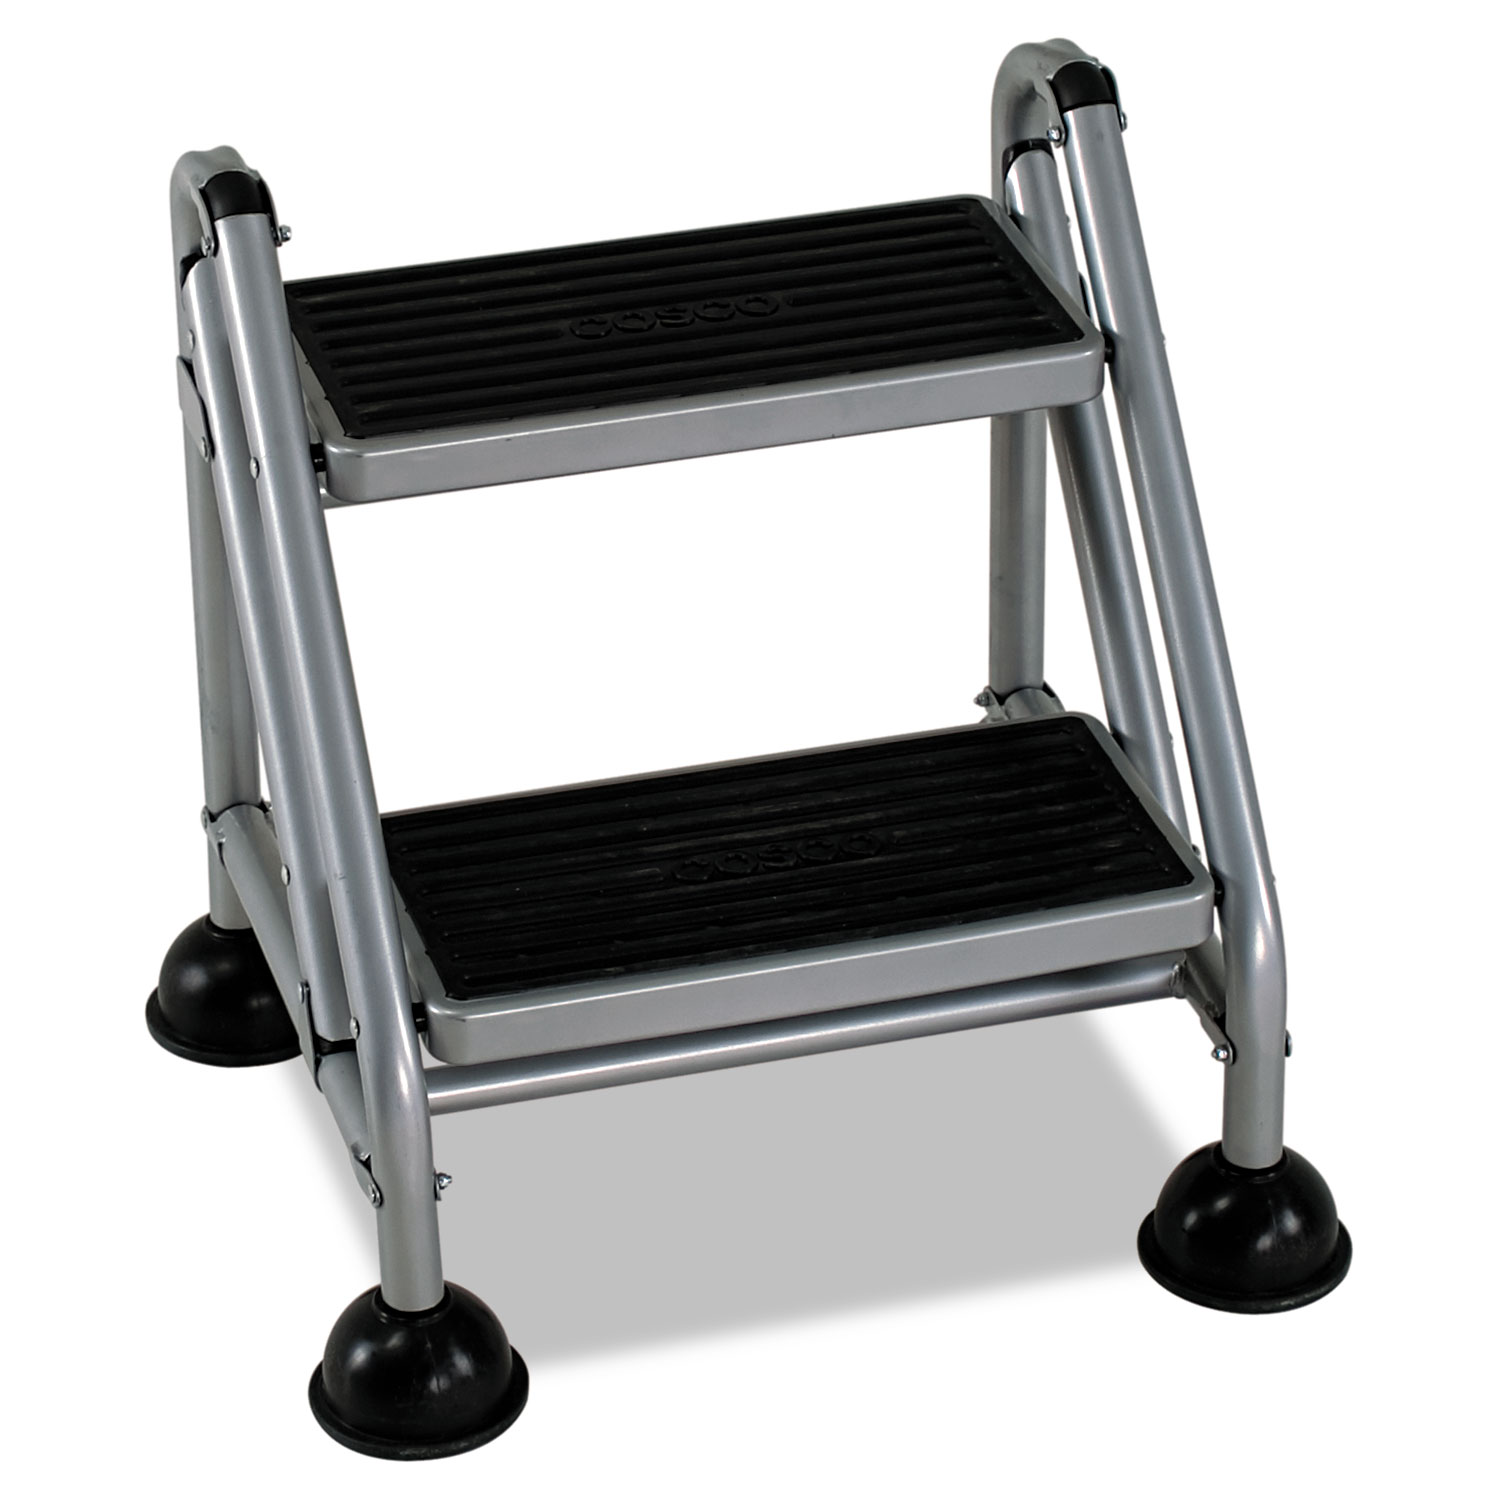 p aluminum step top picture of with rma s project stool rubbermaid lightweight